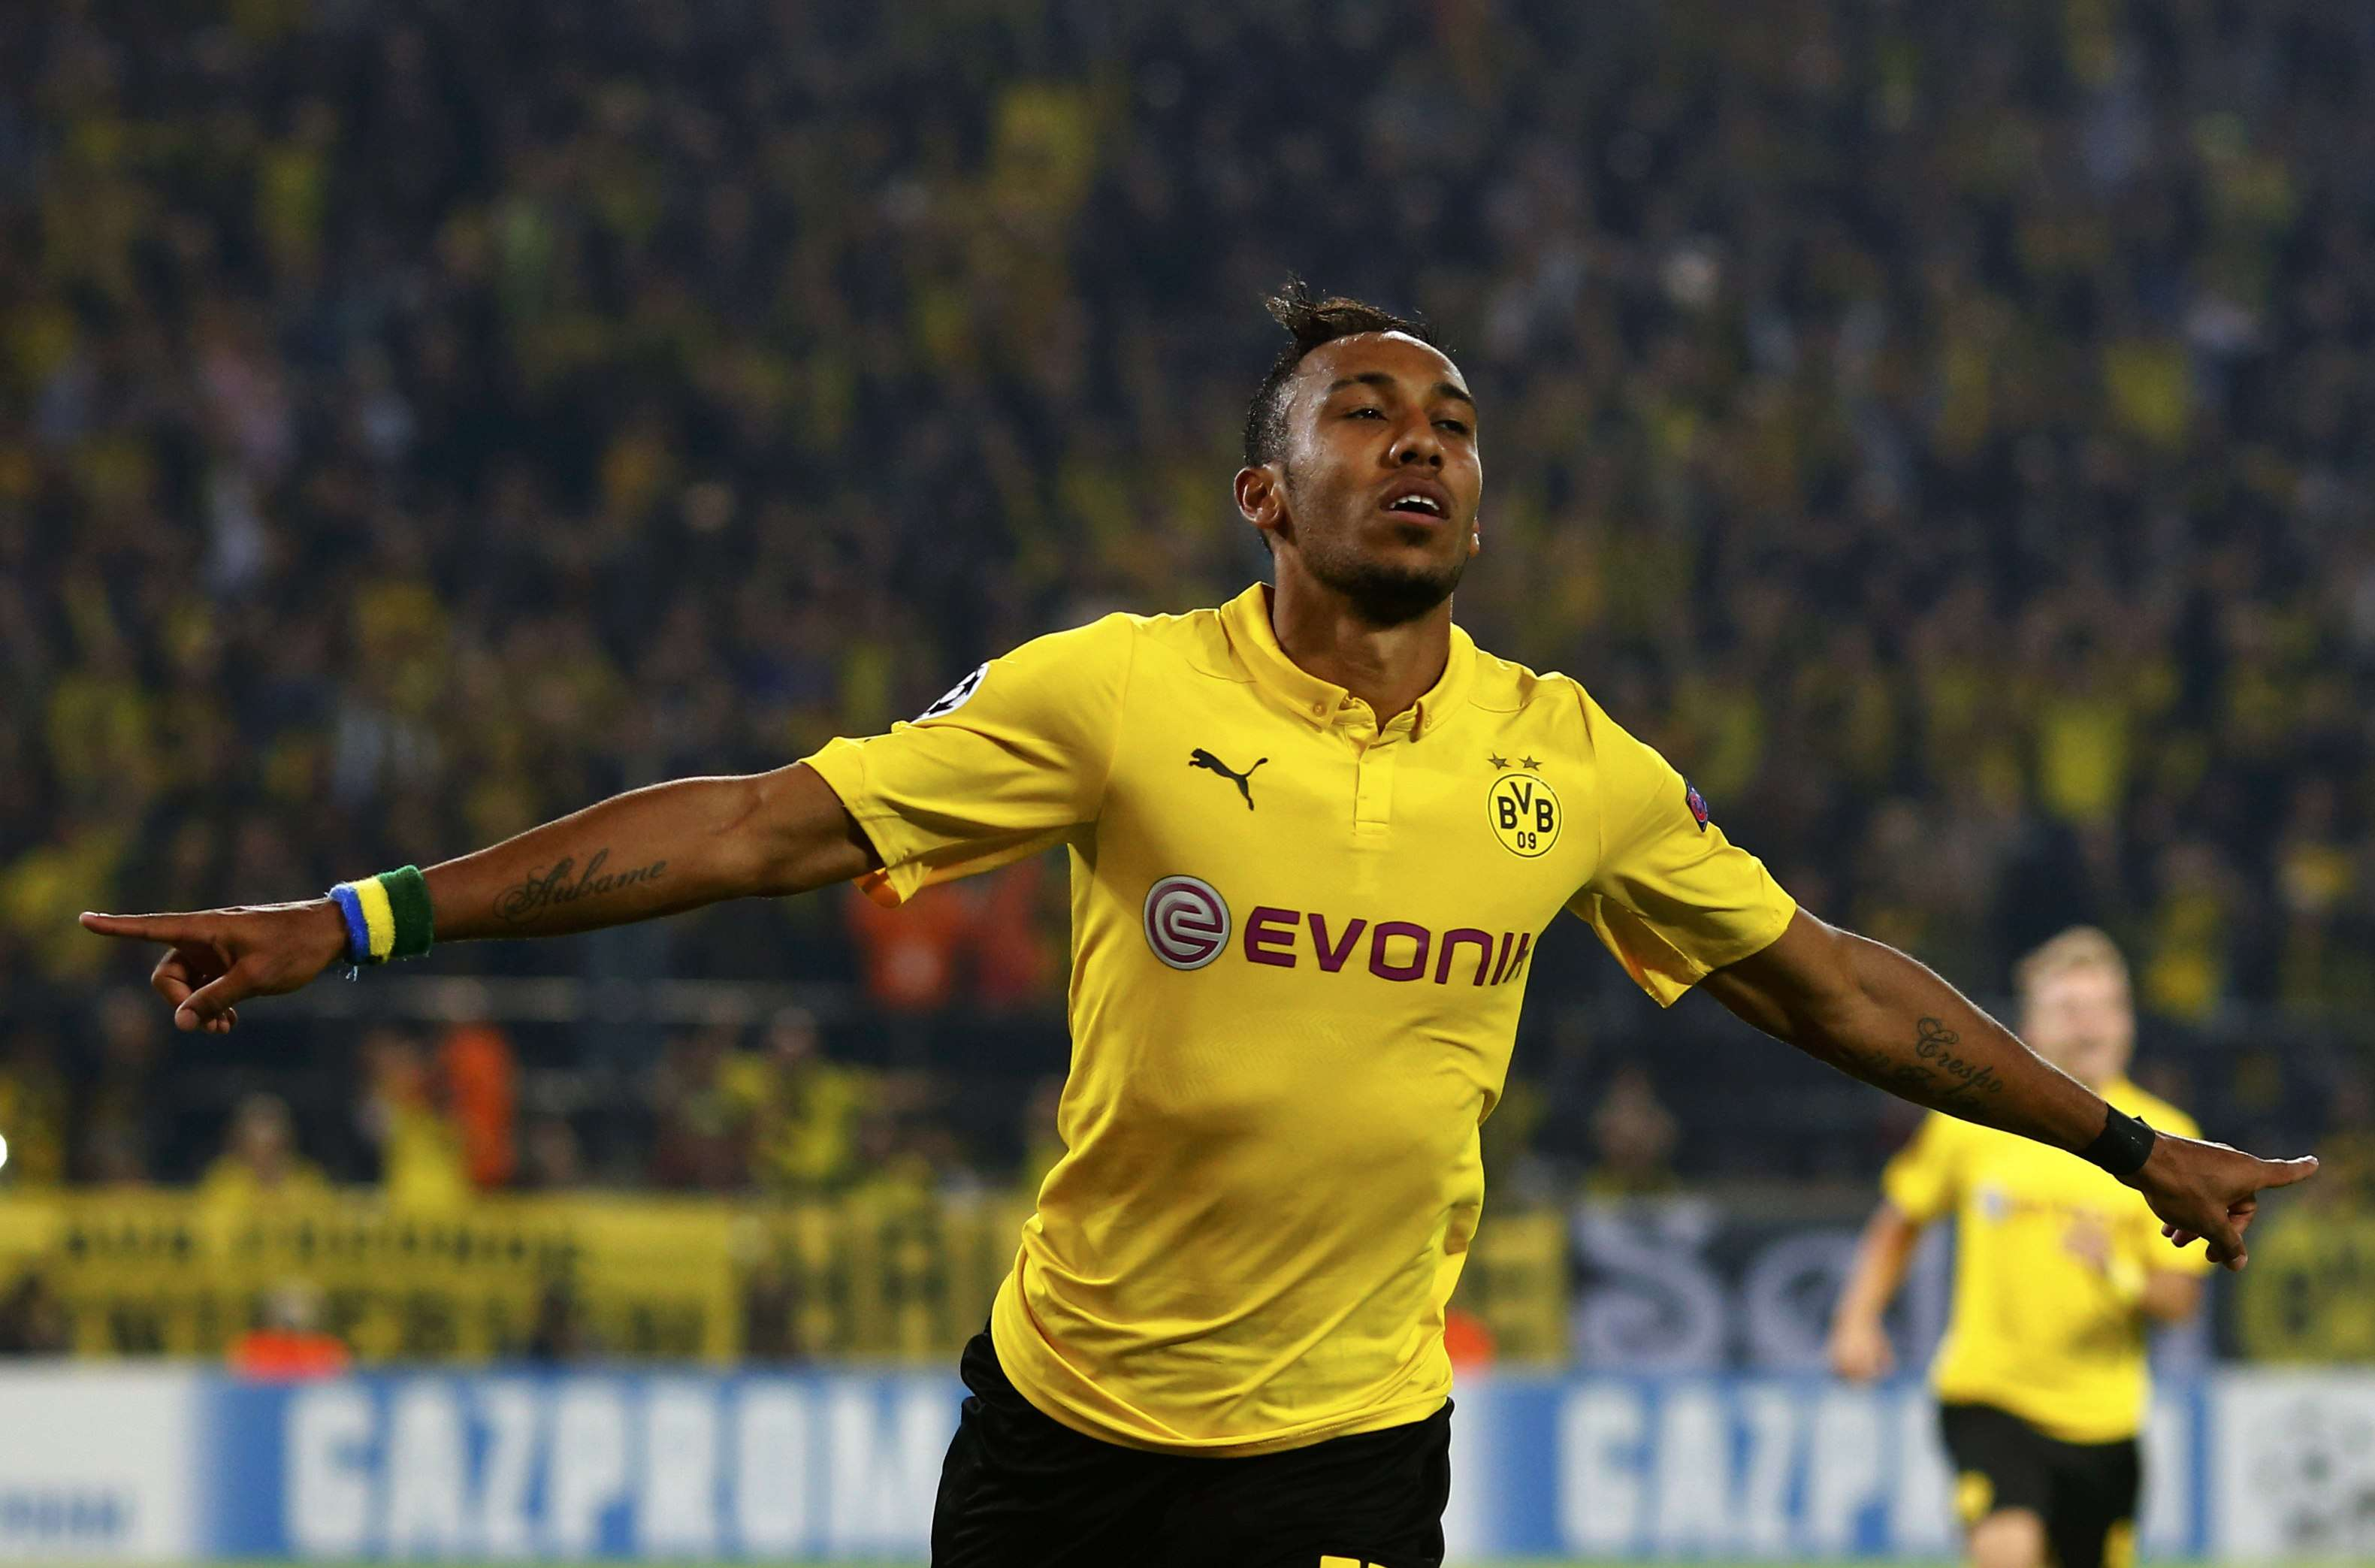 Borussia Dortmund's Pierre-Emerick Aubameyang celebrates after scoring a goal against Arsenal during their Champions League group D soccer match in Dortmund September 16, 2014. REUTERS/Ralph Orlowski (GERMANY - Tags: SPORT SOCCER) Foto: RALPH ORLOWSKI/REUTERS